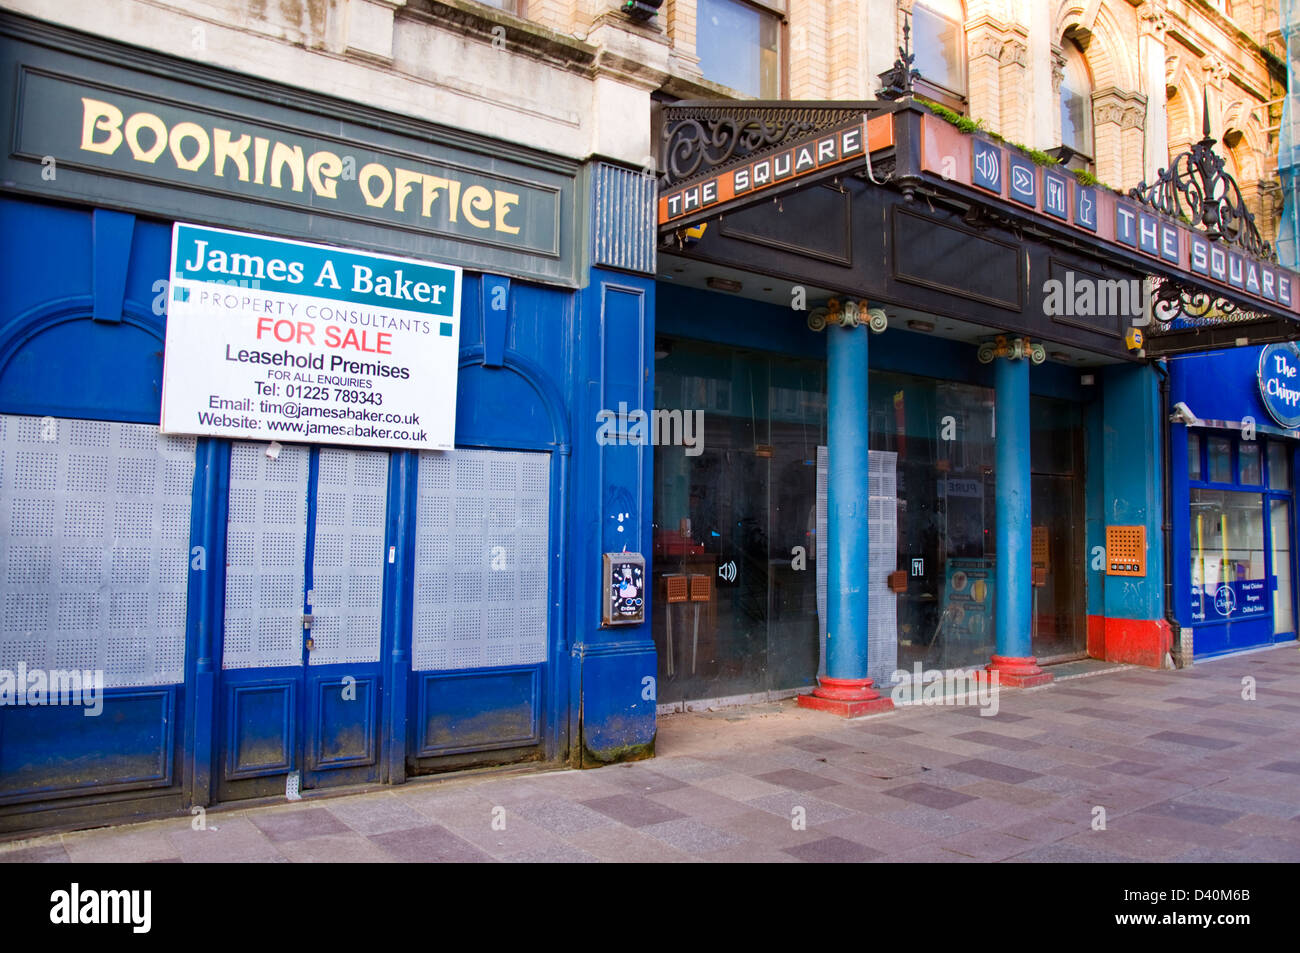 Booking office stock photos booking office stock images alamy - Cardiff city ticket office number ...